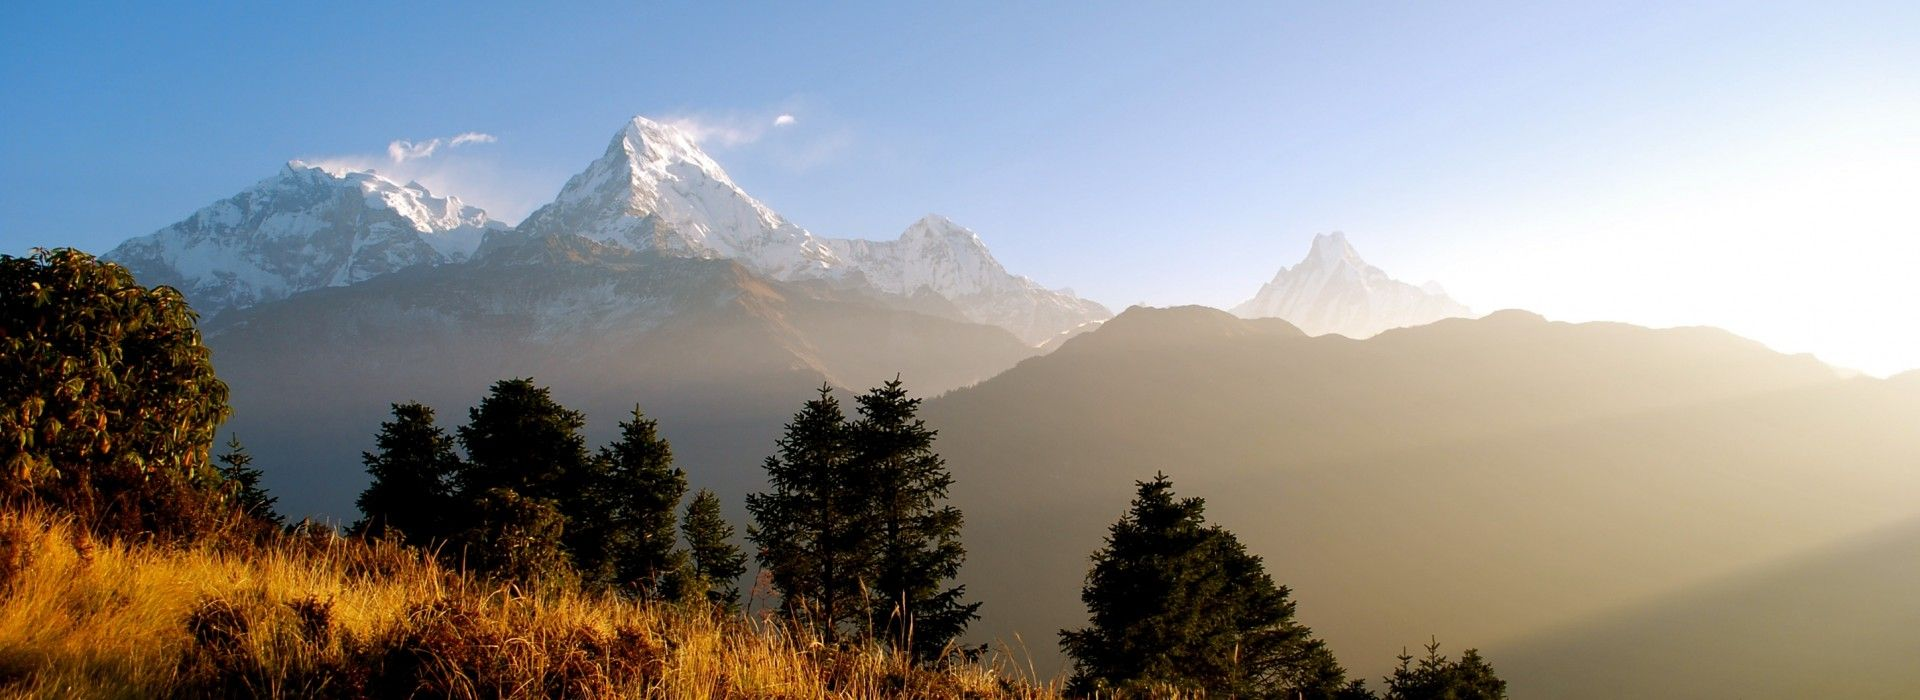 Getaways and short breaks Tours in Asia